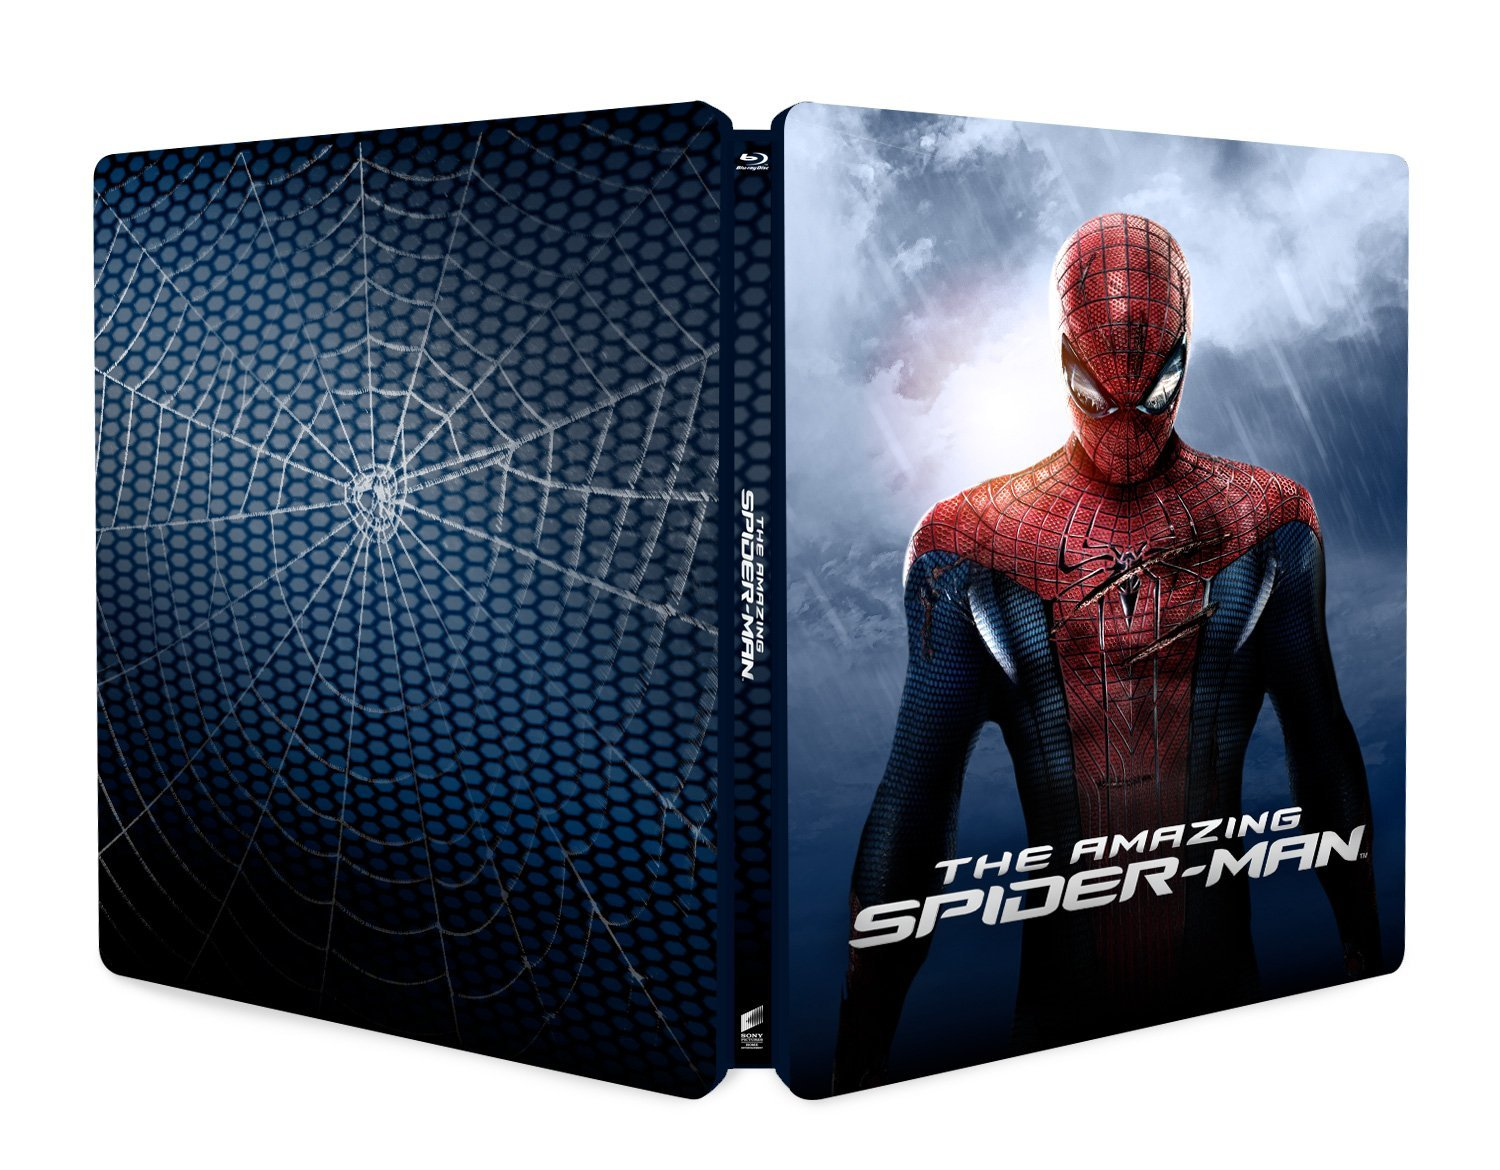 Amazing spider-man steelbook it